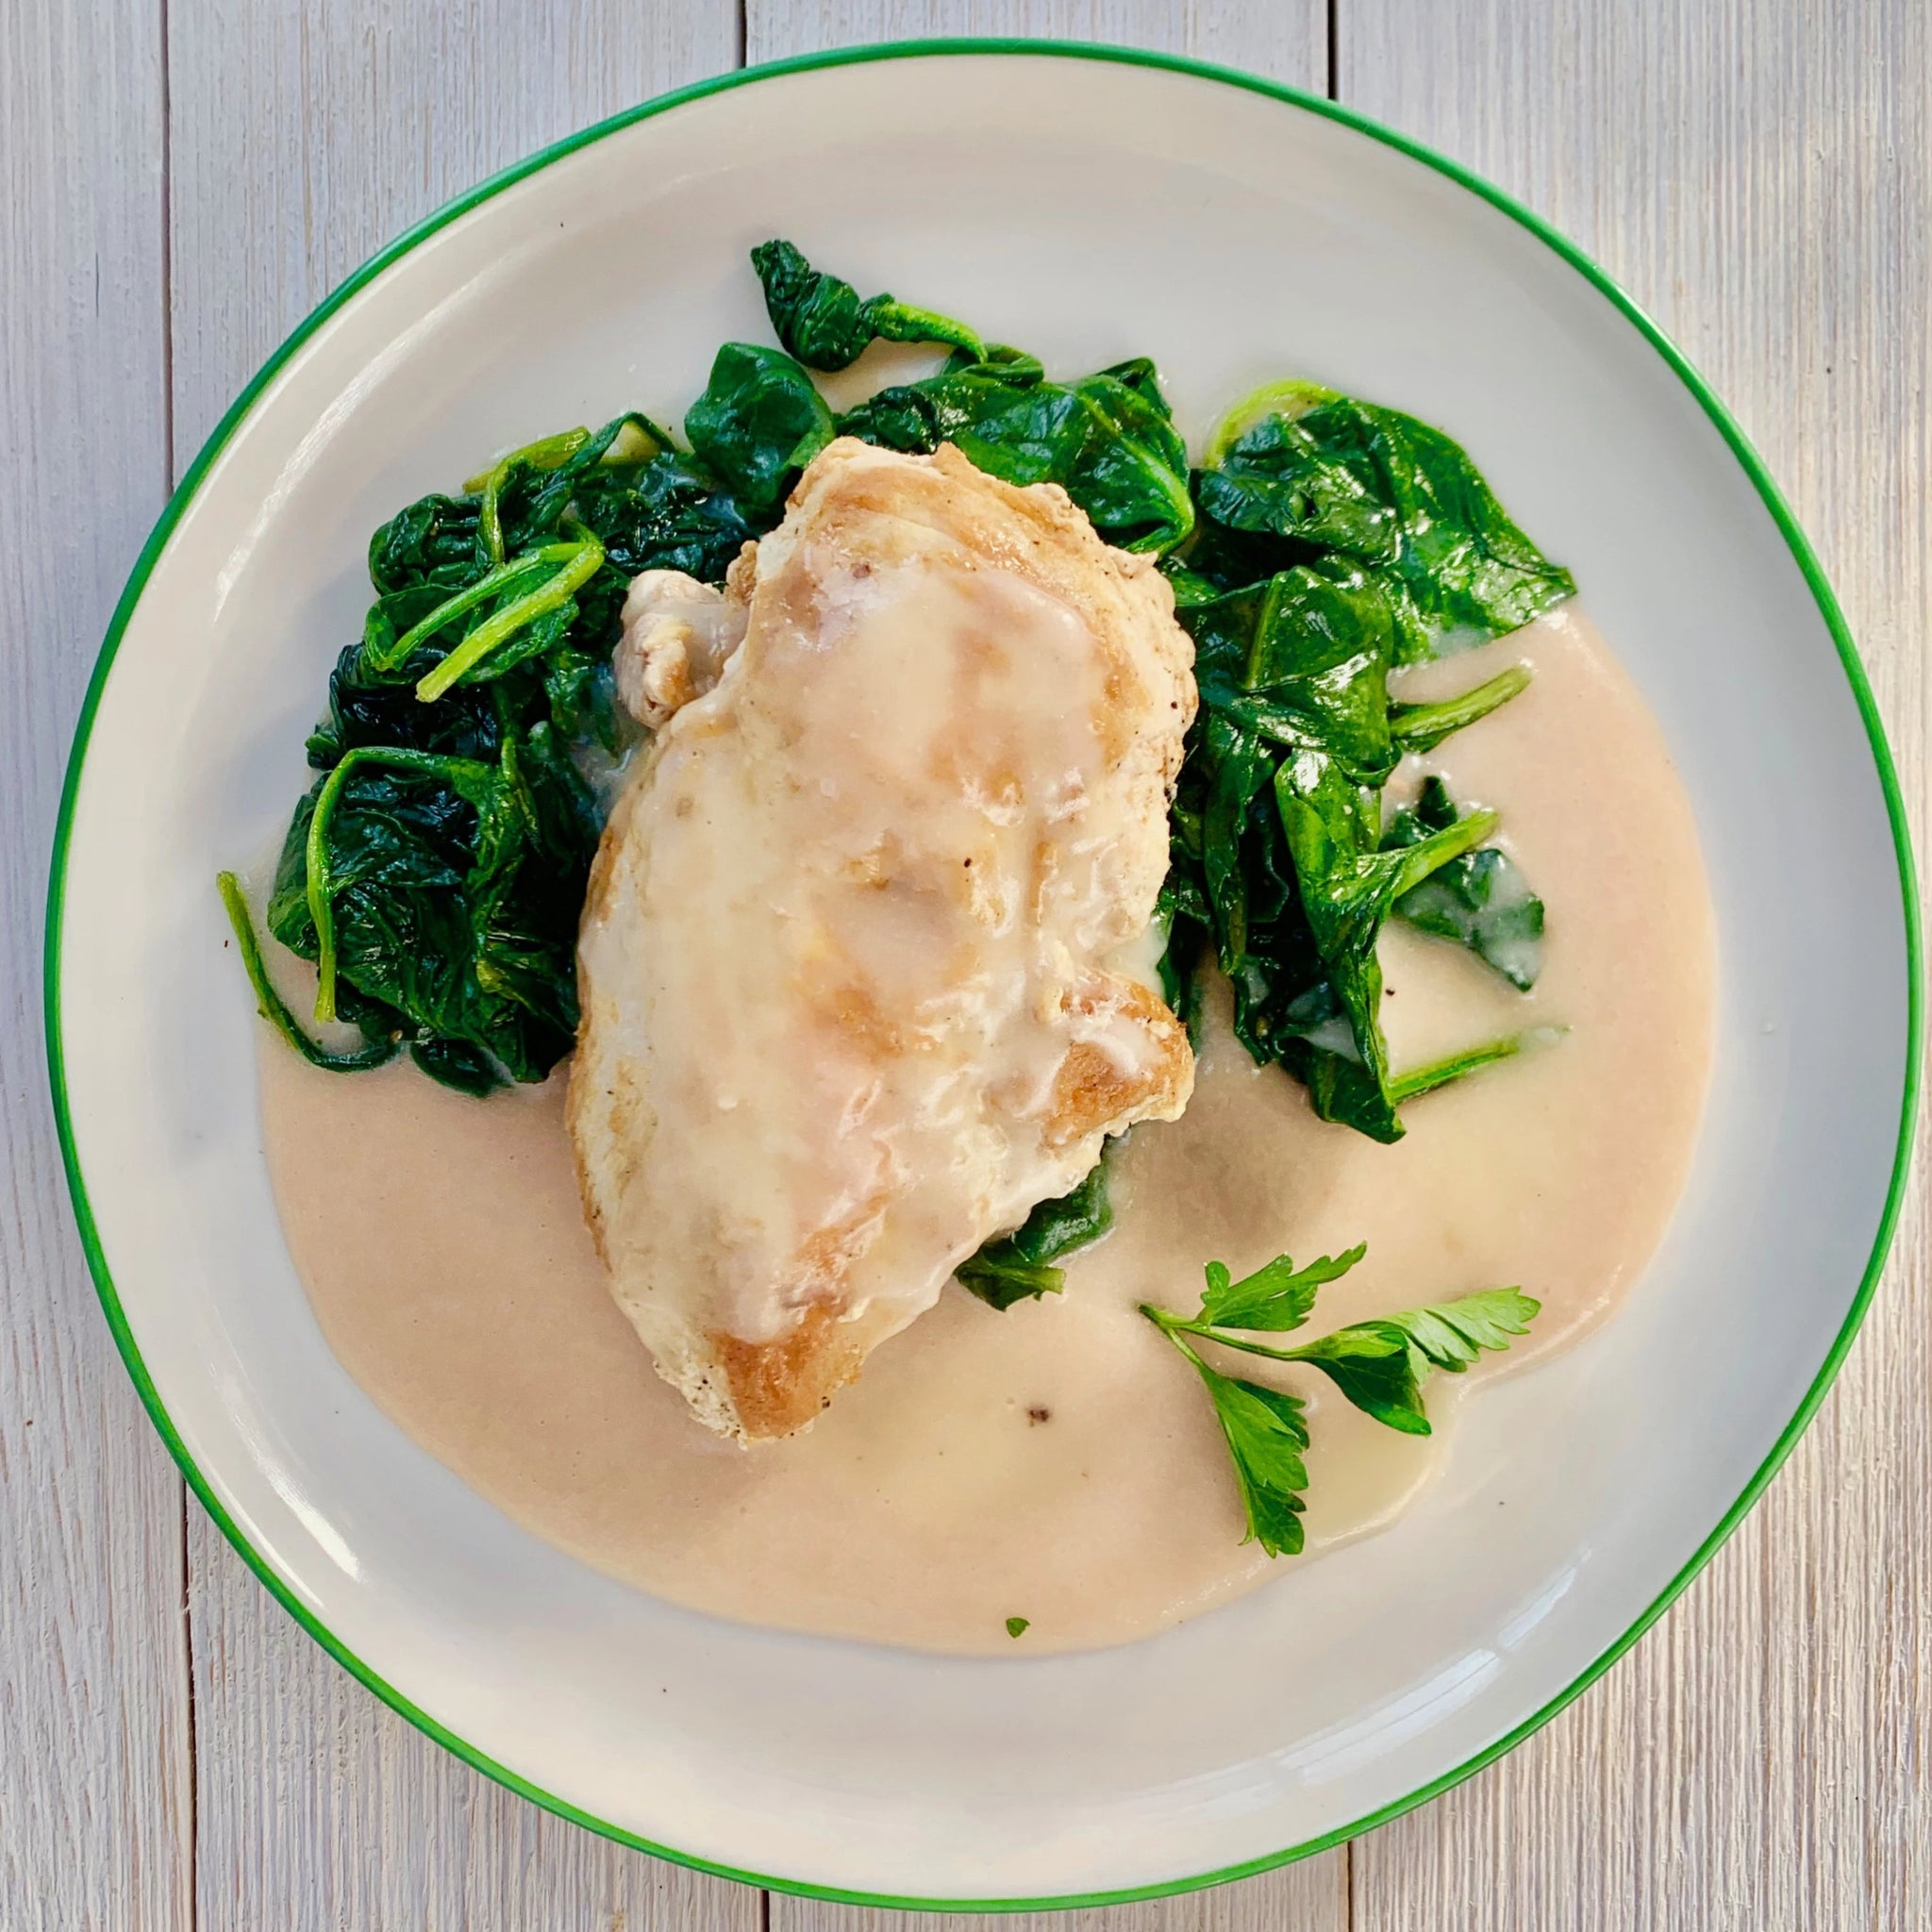 Chicken with 40 Cloves of Garlic Sauce, White Bean Puree and Wilted Greens